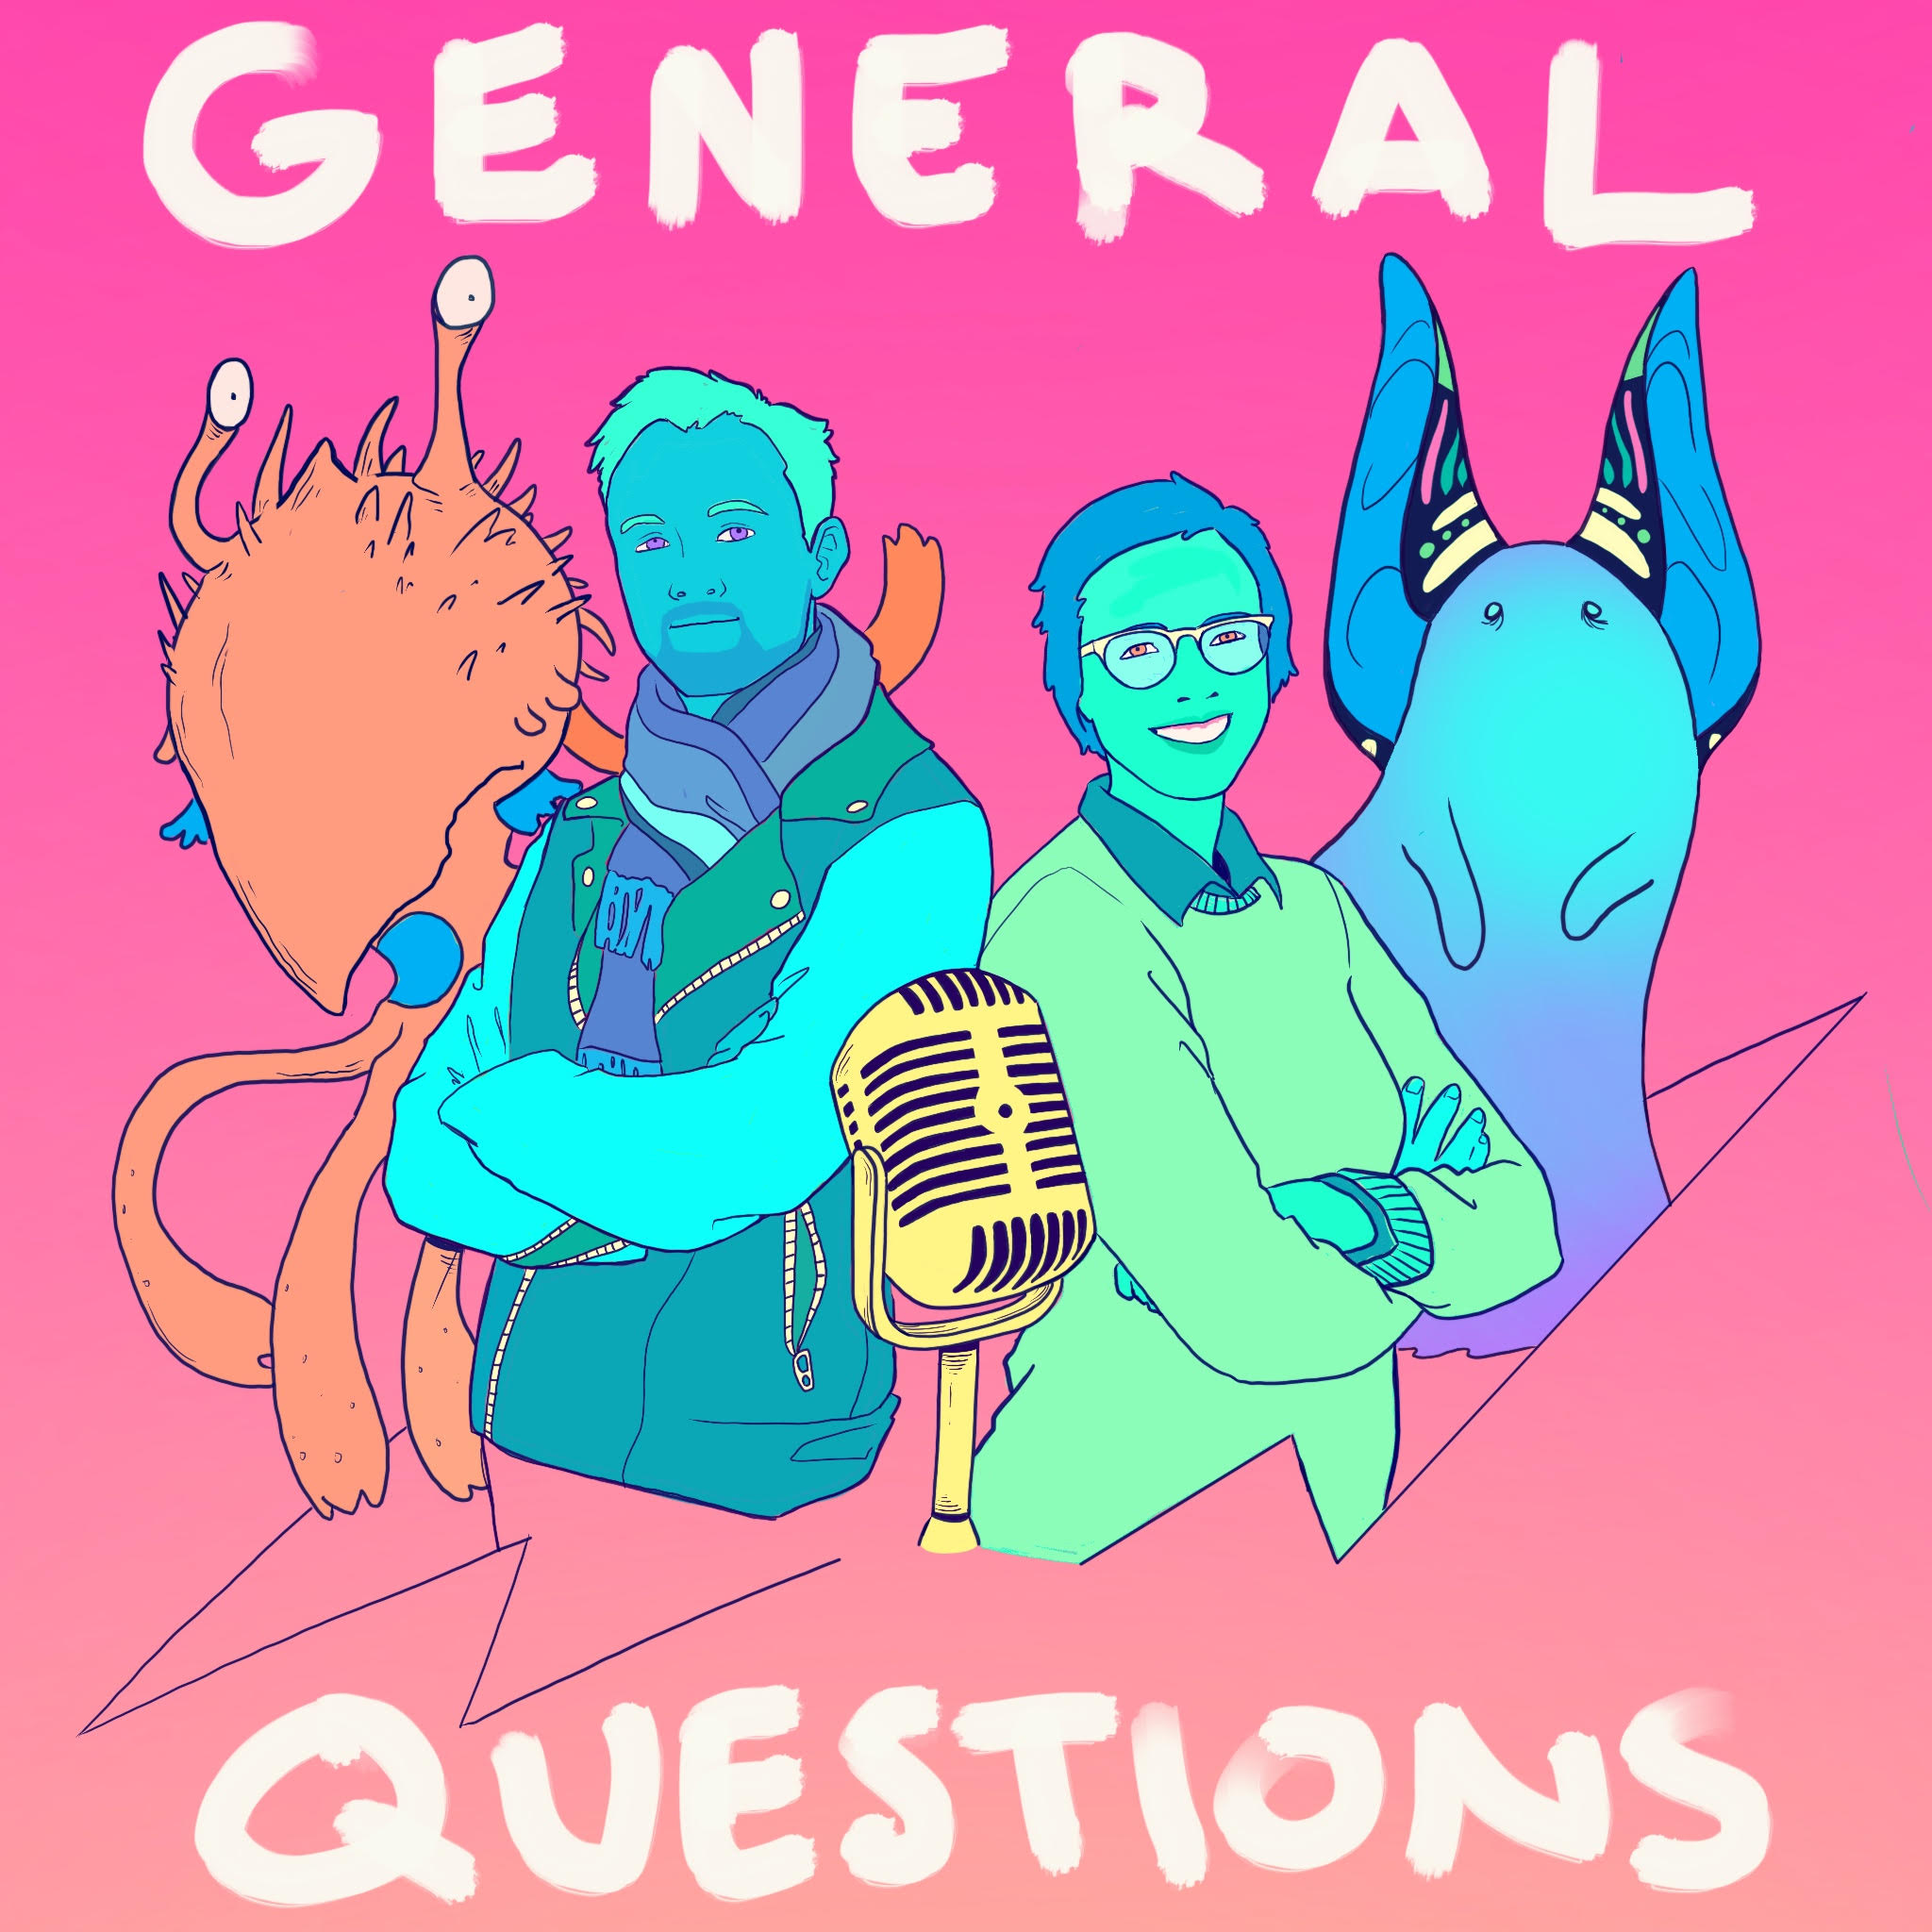 General Questions show image